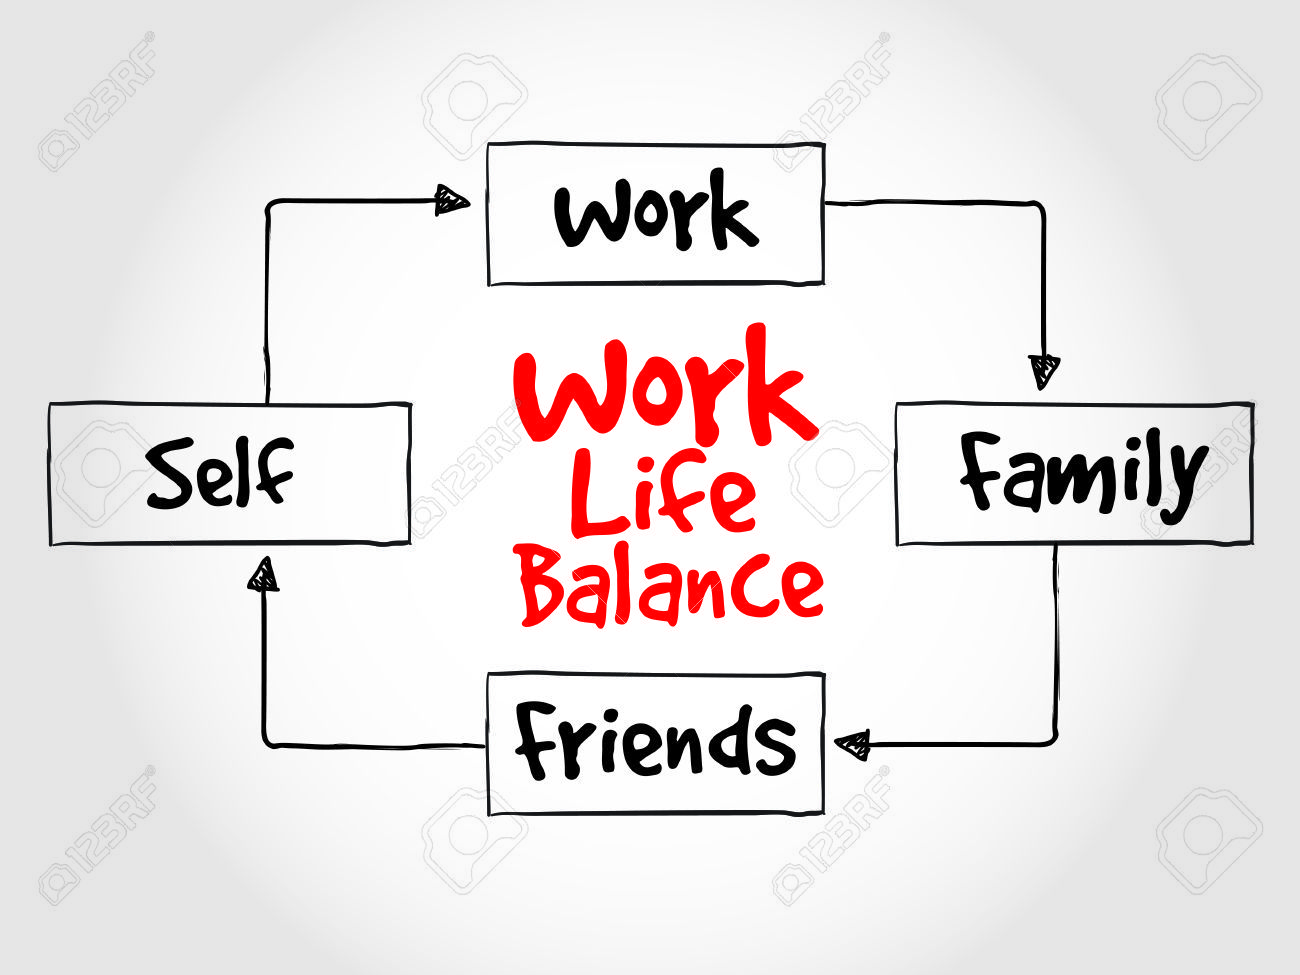 Work life balance mind map process concept royalty free cliparts work life balance mind map process concept ccuart Choice Image